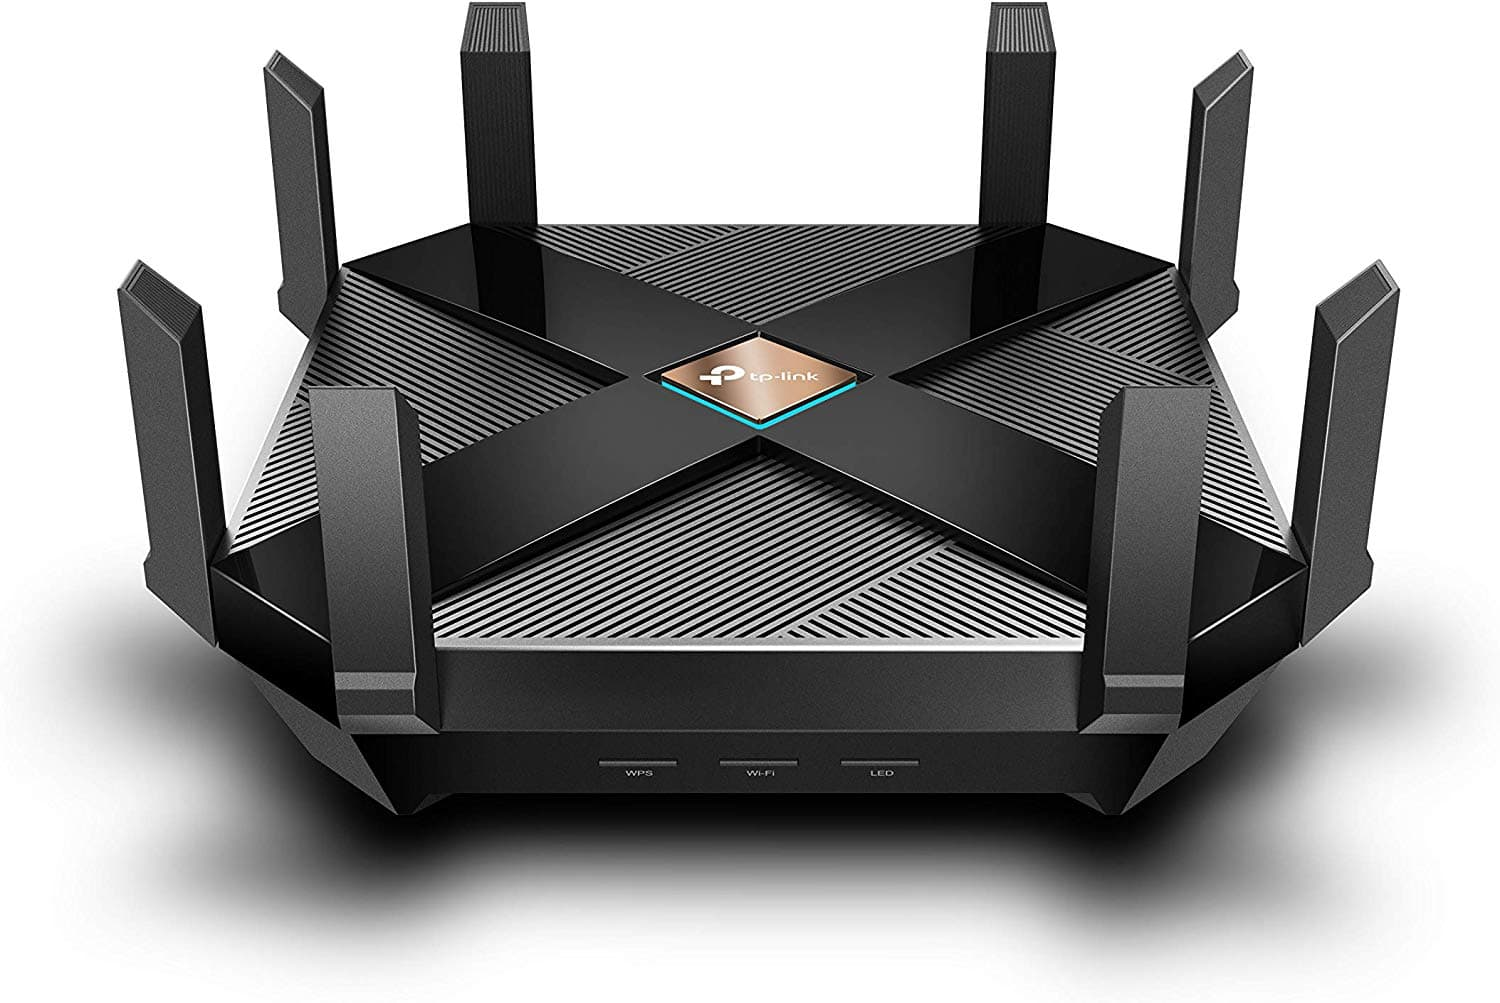 TP-Link WiFi 6 AX6000 8-Stream Smart WiFi Router $229.99